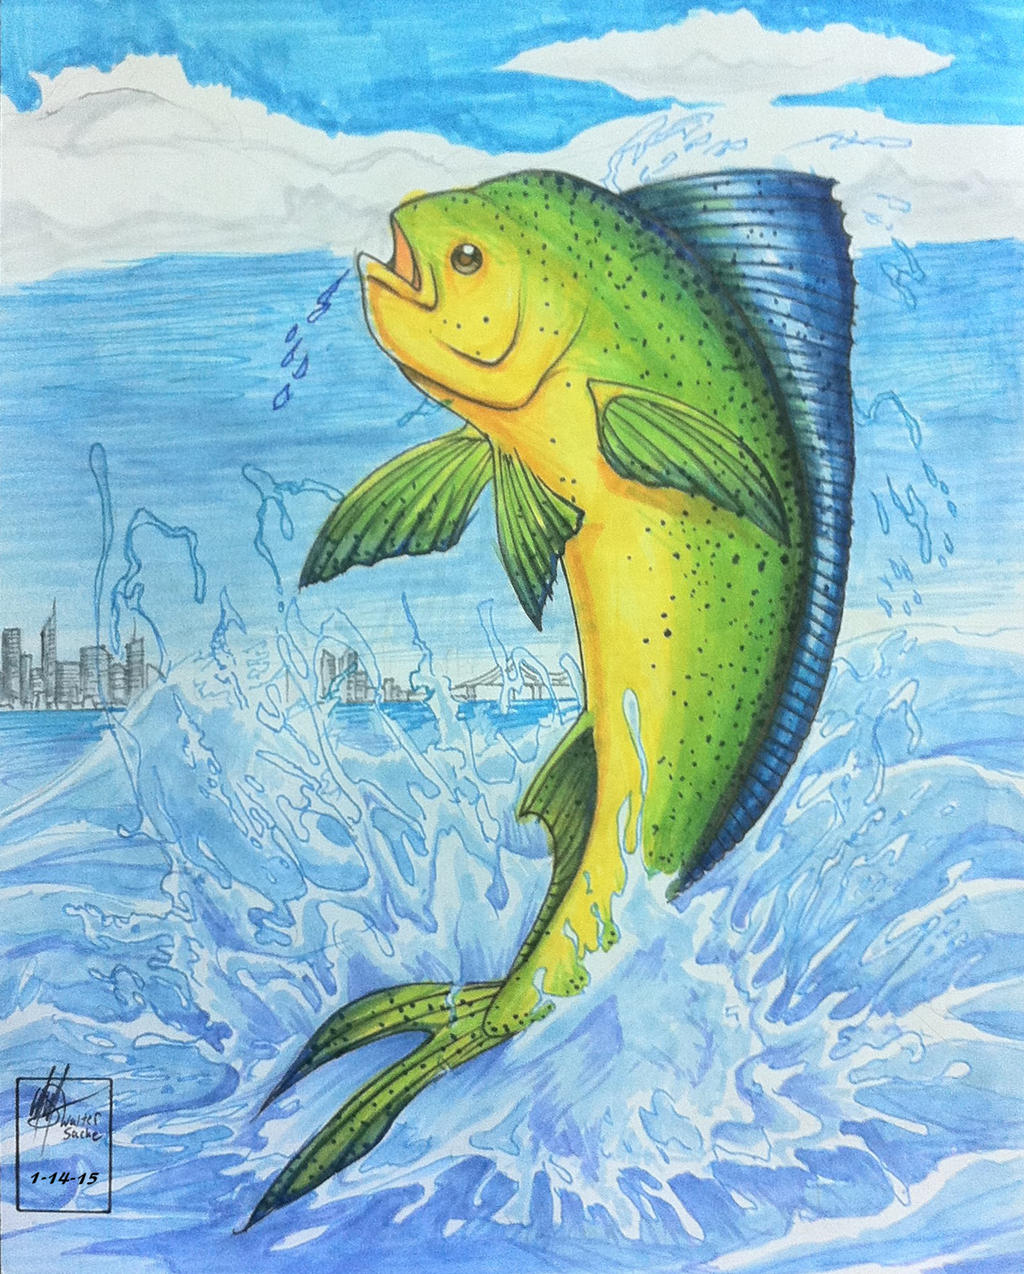 Mahi Mahi Fish_Close up View :3 by wsache007 on DeviantArt